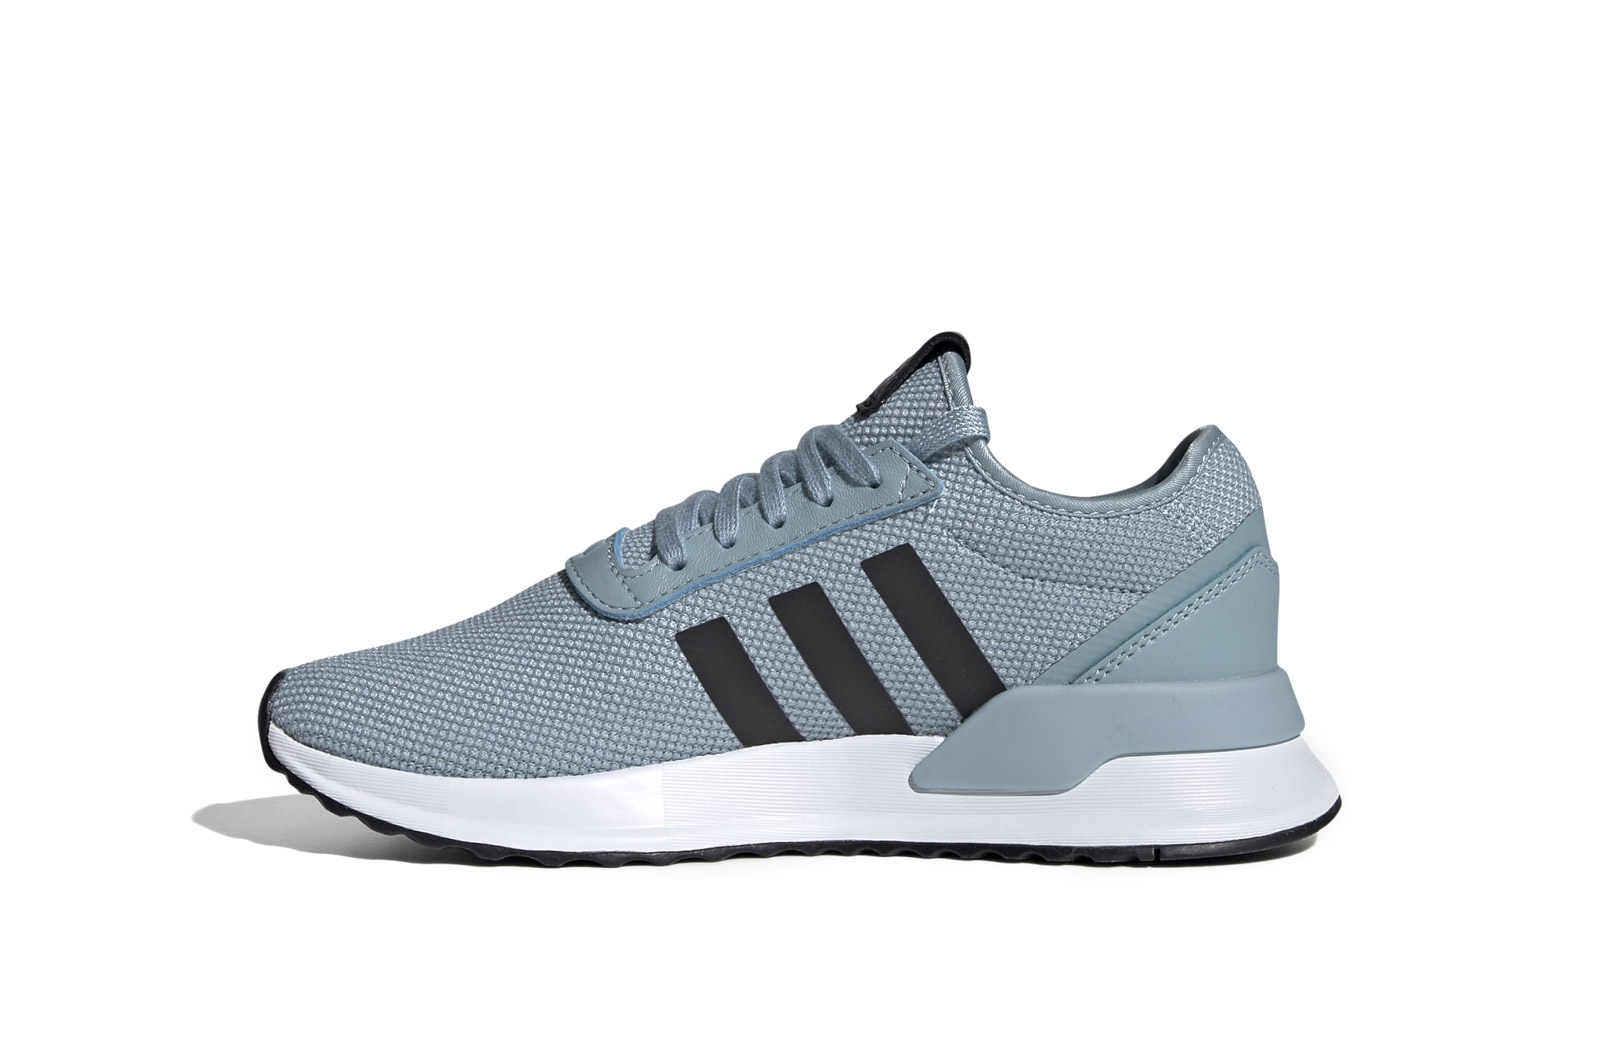 adidas Originals U PATH X W EE4567 Οινοπνευματί